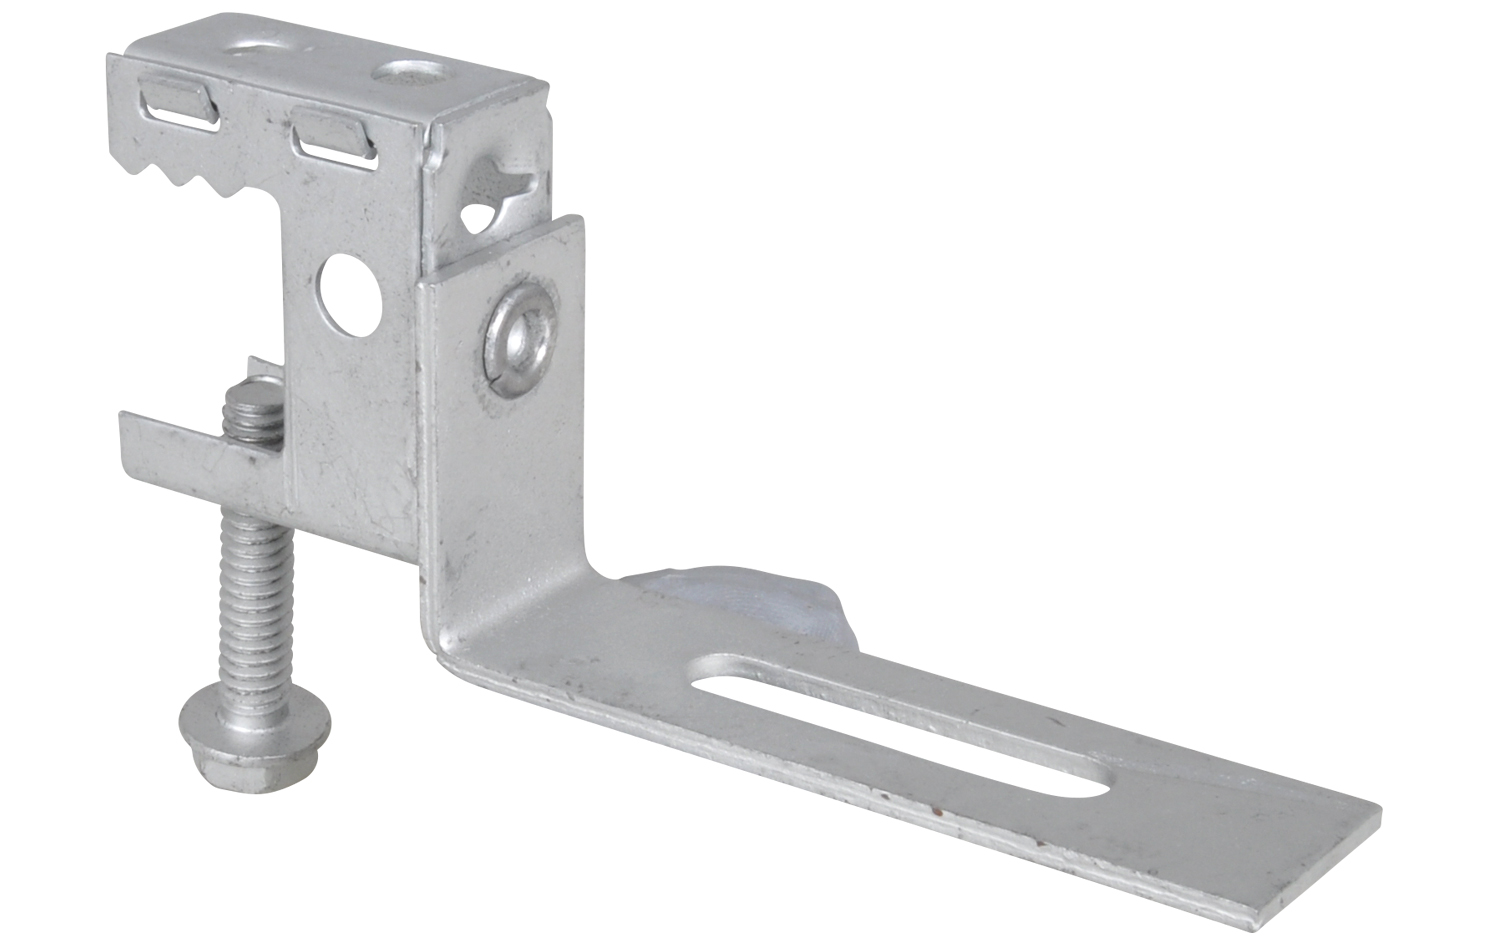 Britclips® Master Clamp / Light Duty Cable Tray Bracket - Walraven